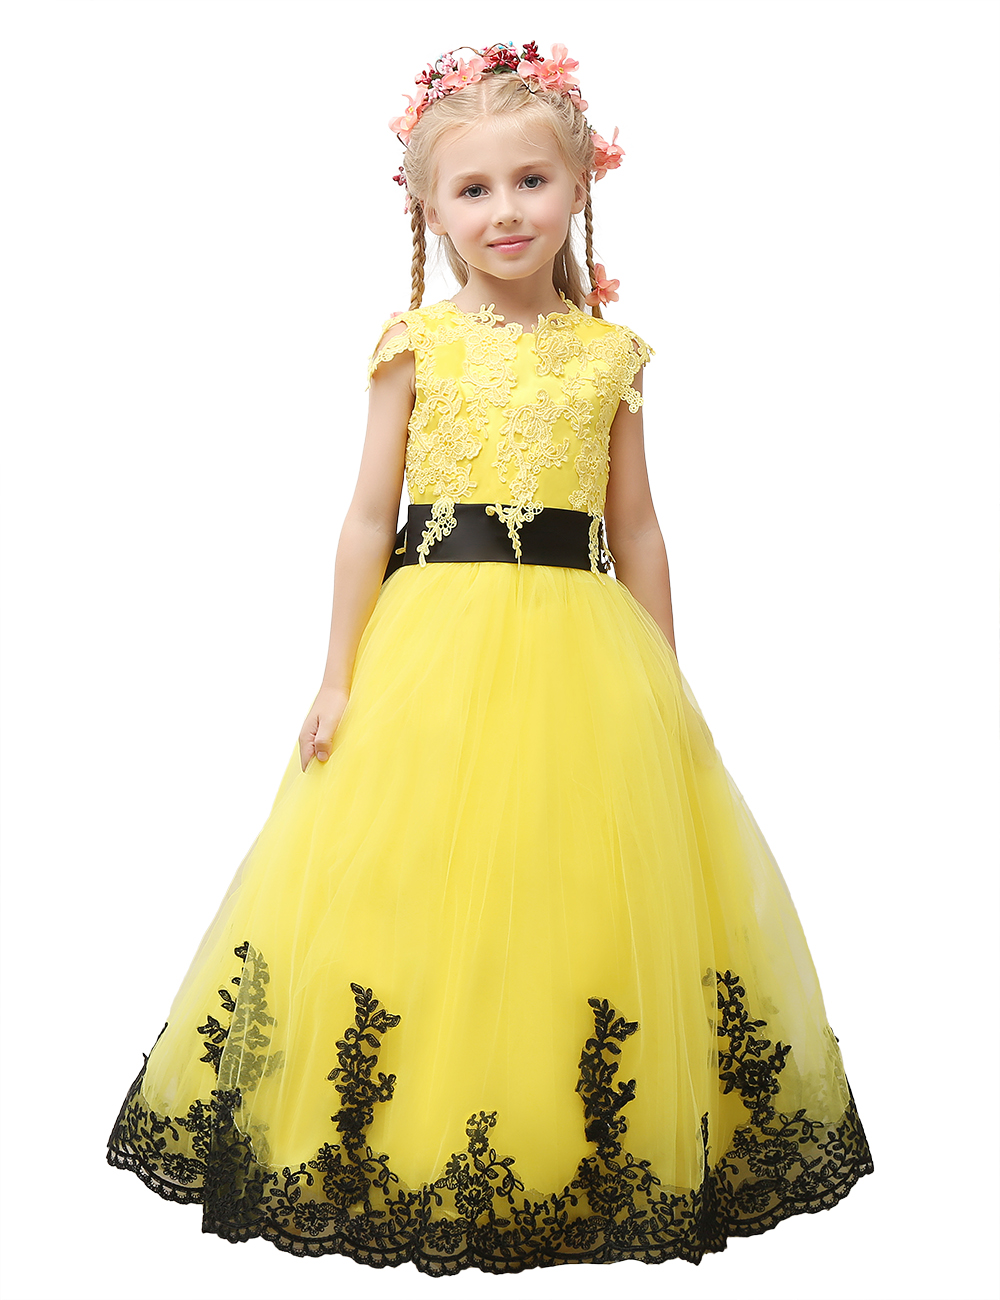 With black sash flower girl dresses mightylinksfo